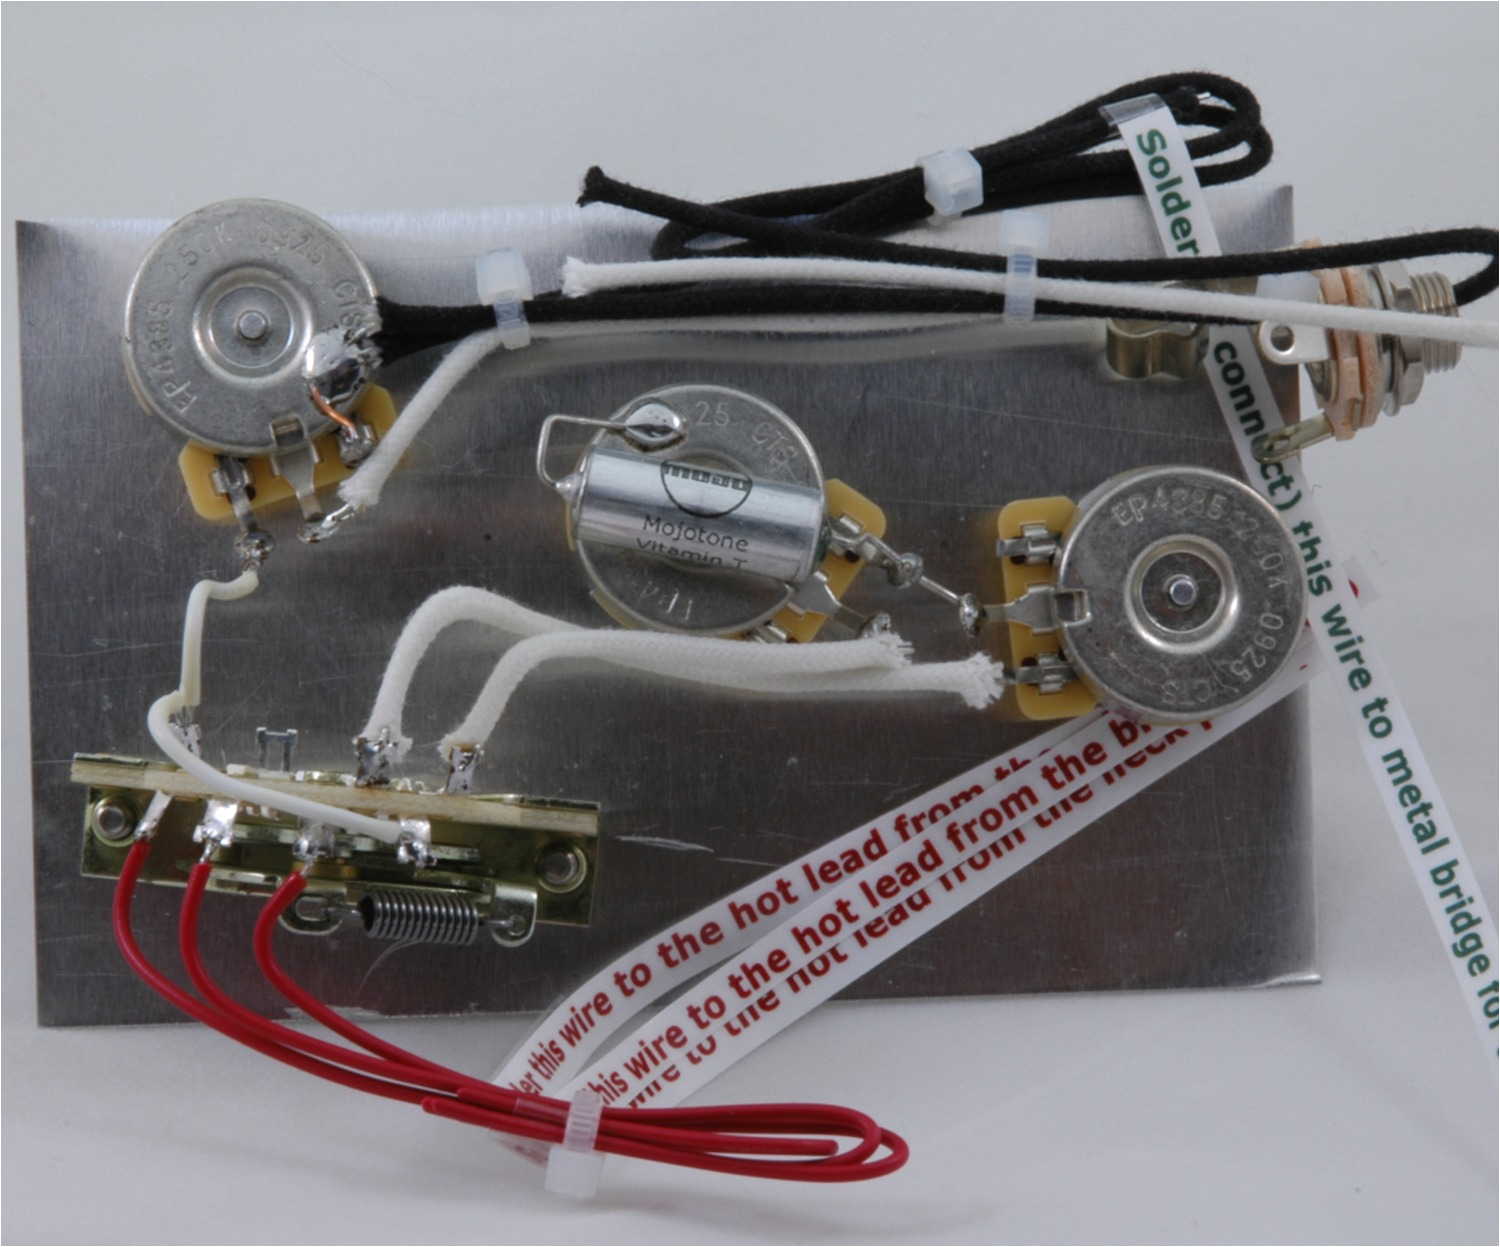 stevie ray vaughan model stratocaster wiring harness